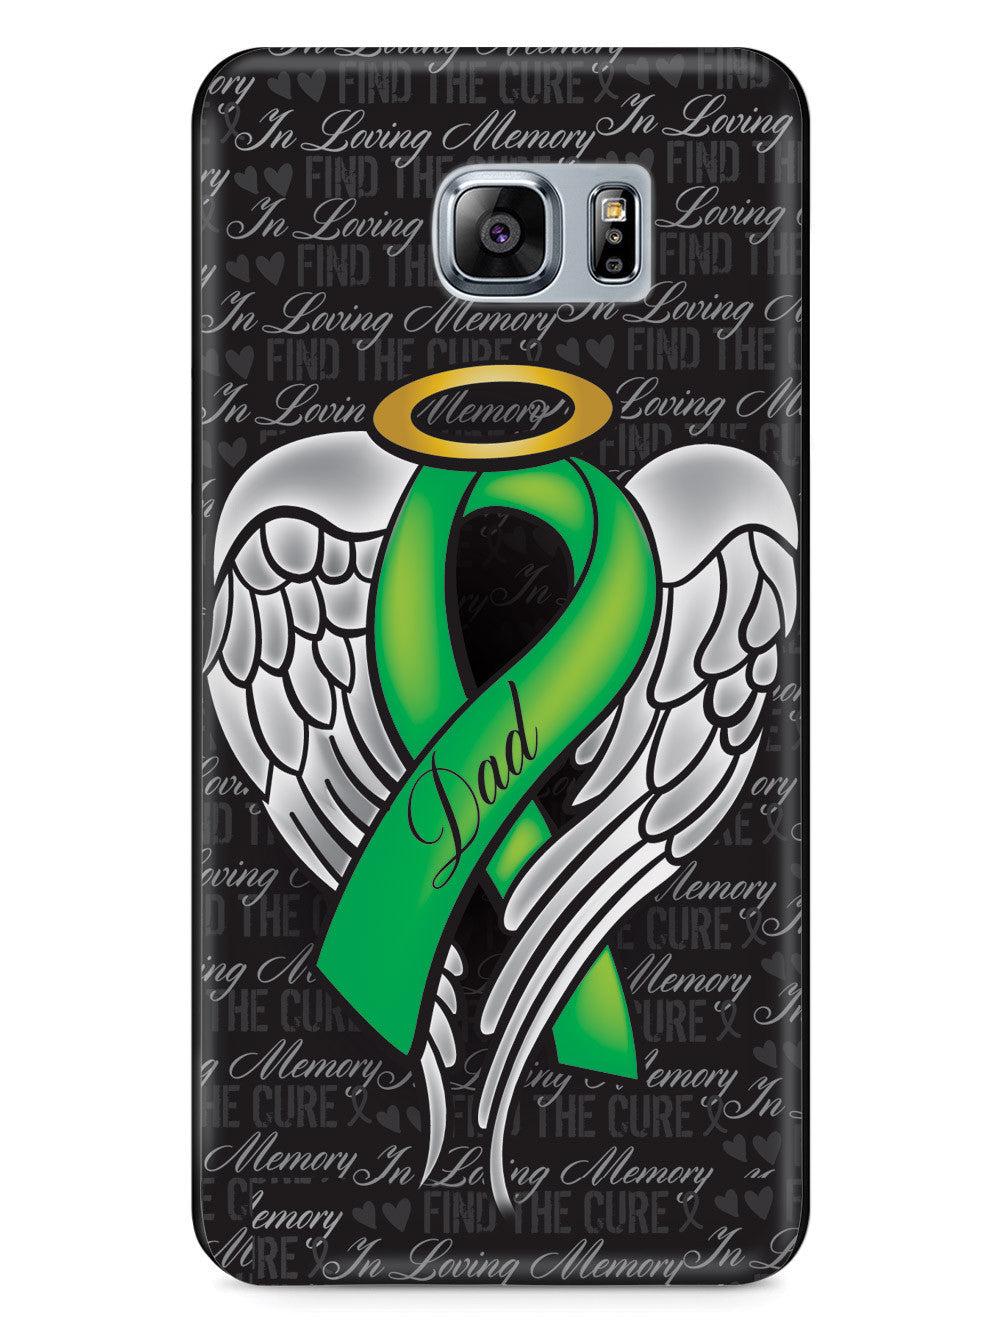 In Loving Memory of My Dad - Green Ribbon Case